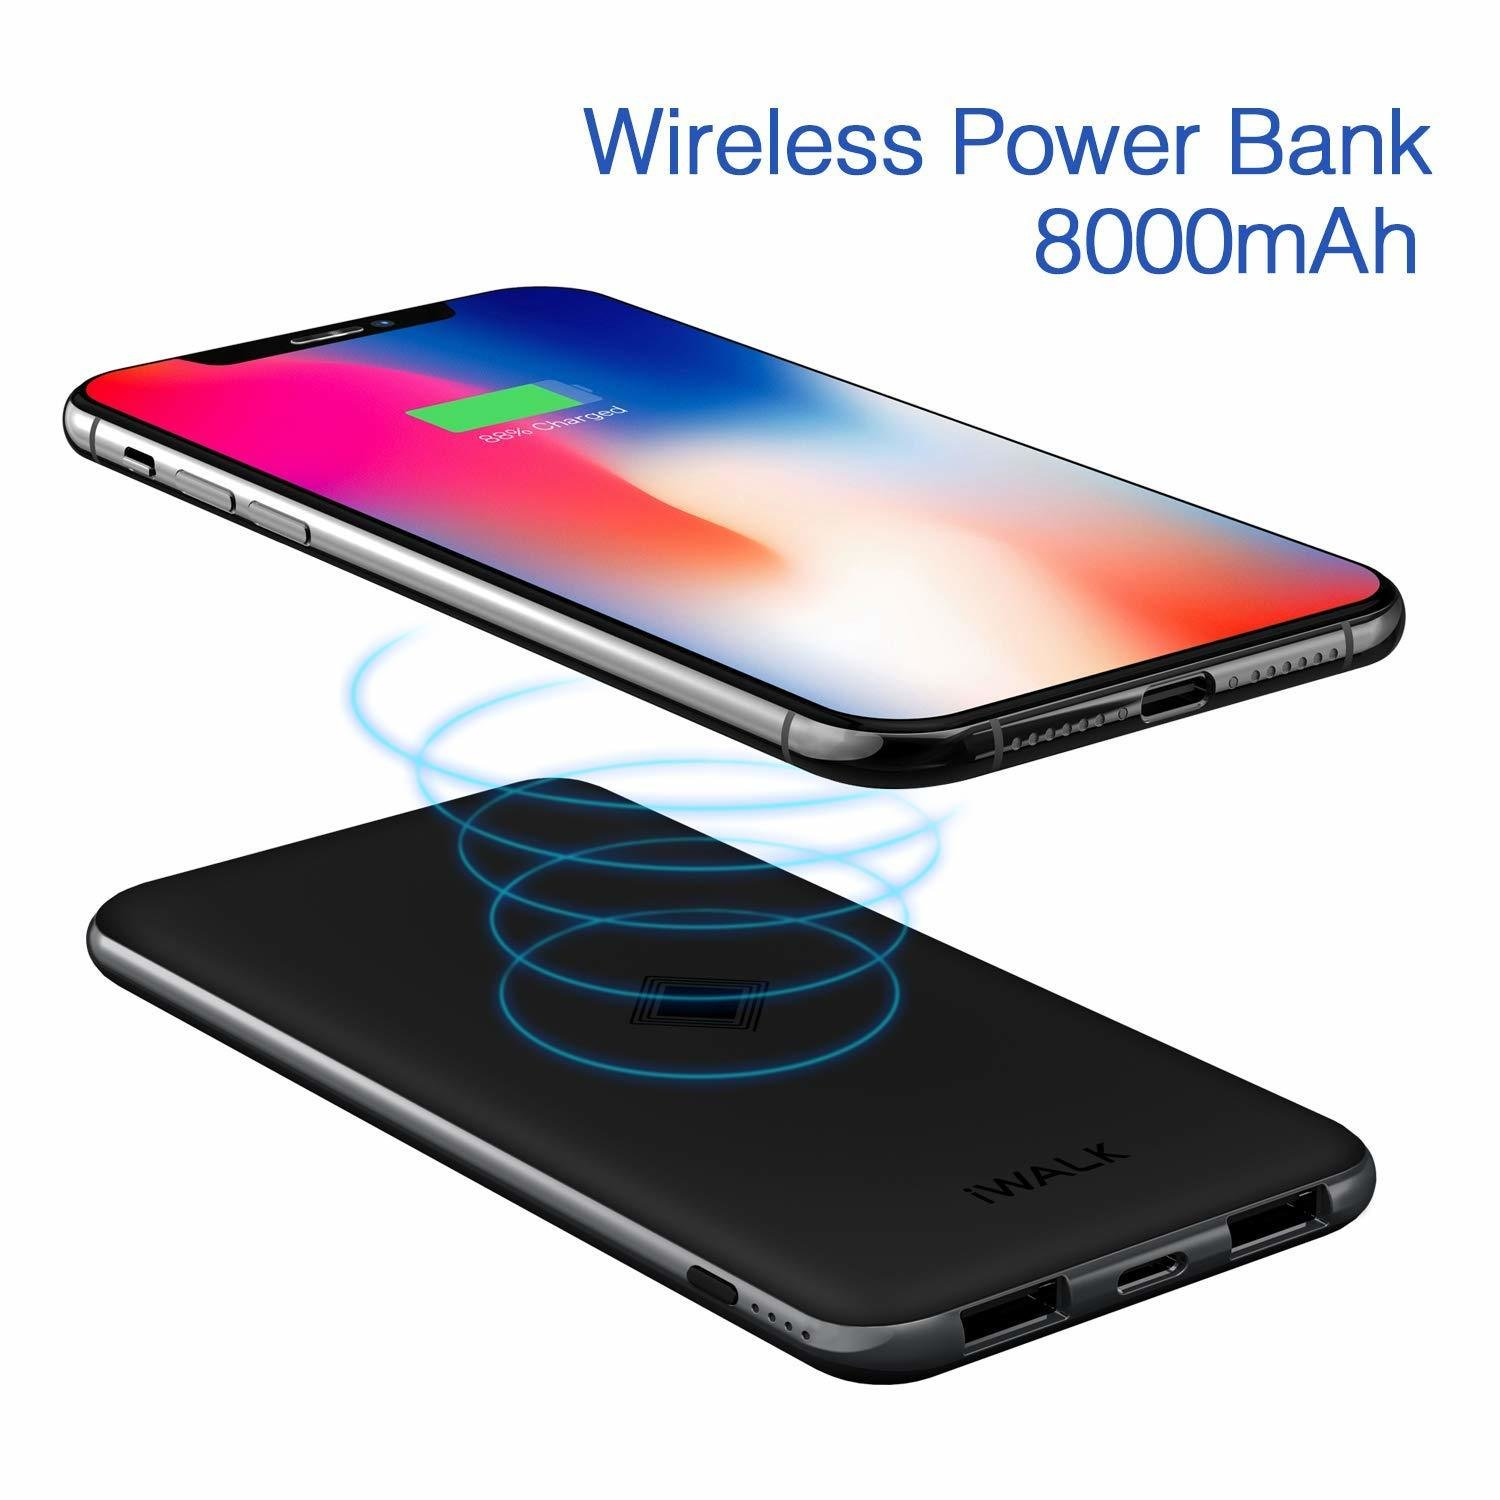 iWALK Qi Wireless Charger TYPE C - Dual USB Power Bank 8000mAh Slim Portable Charging Pad External Battery Pack Compatible iPhoneXS/X/8/8 Plus,Samsung Galaxy S